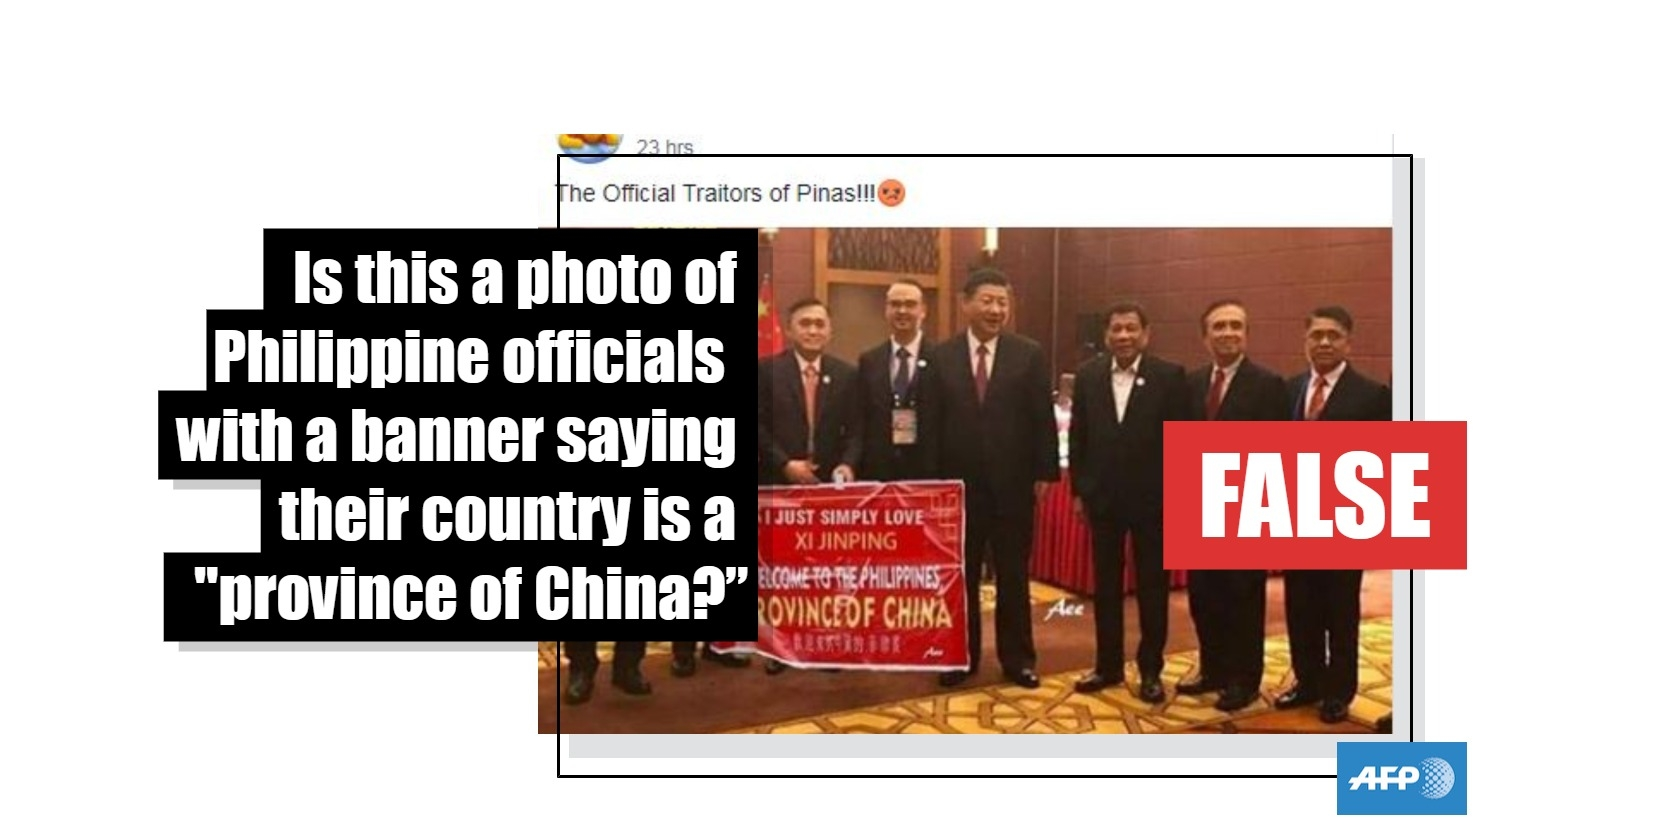 """No, this is not a photo of Chinese President Xi Jinping being welcomed to Manila with a banner saying the Philippines is a """"province of China"""""""